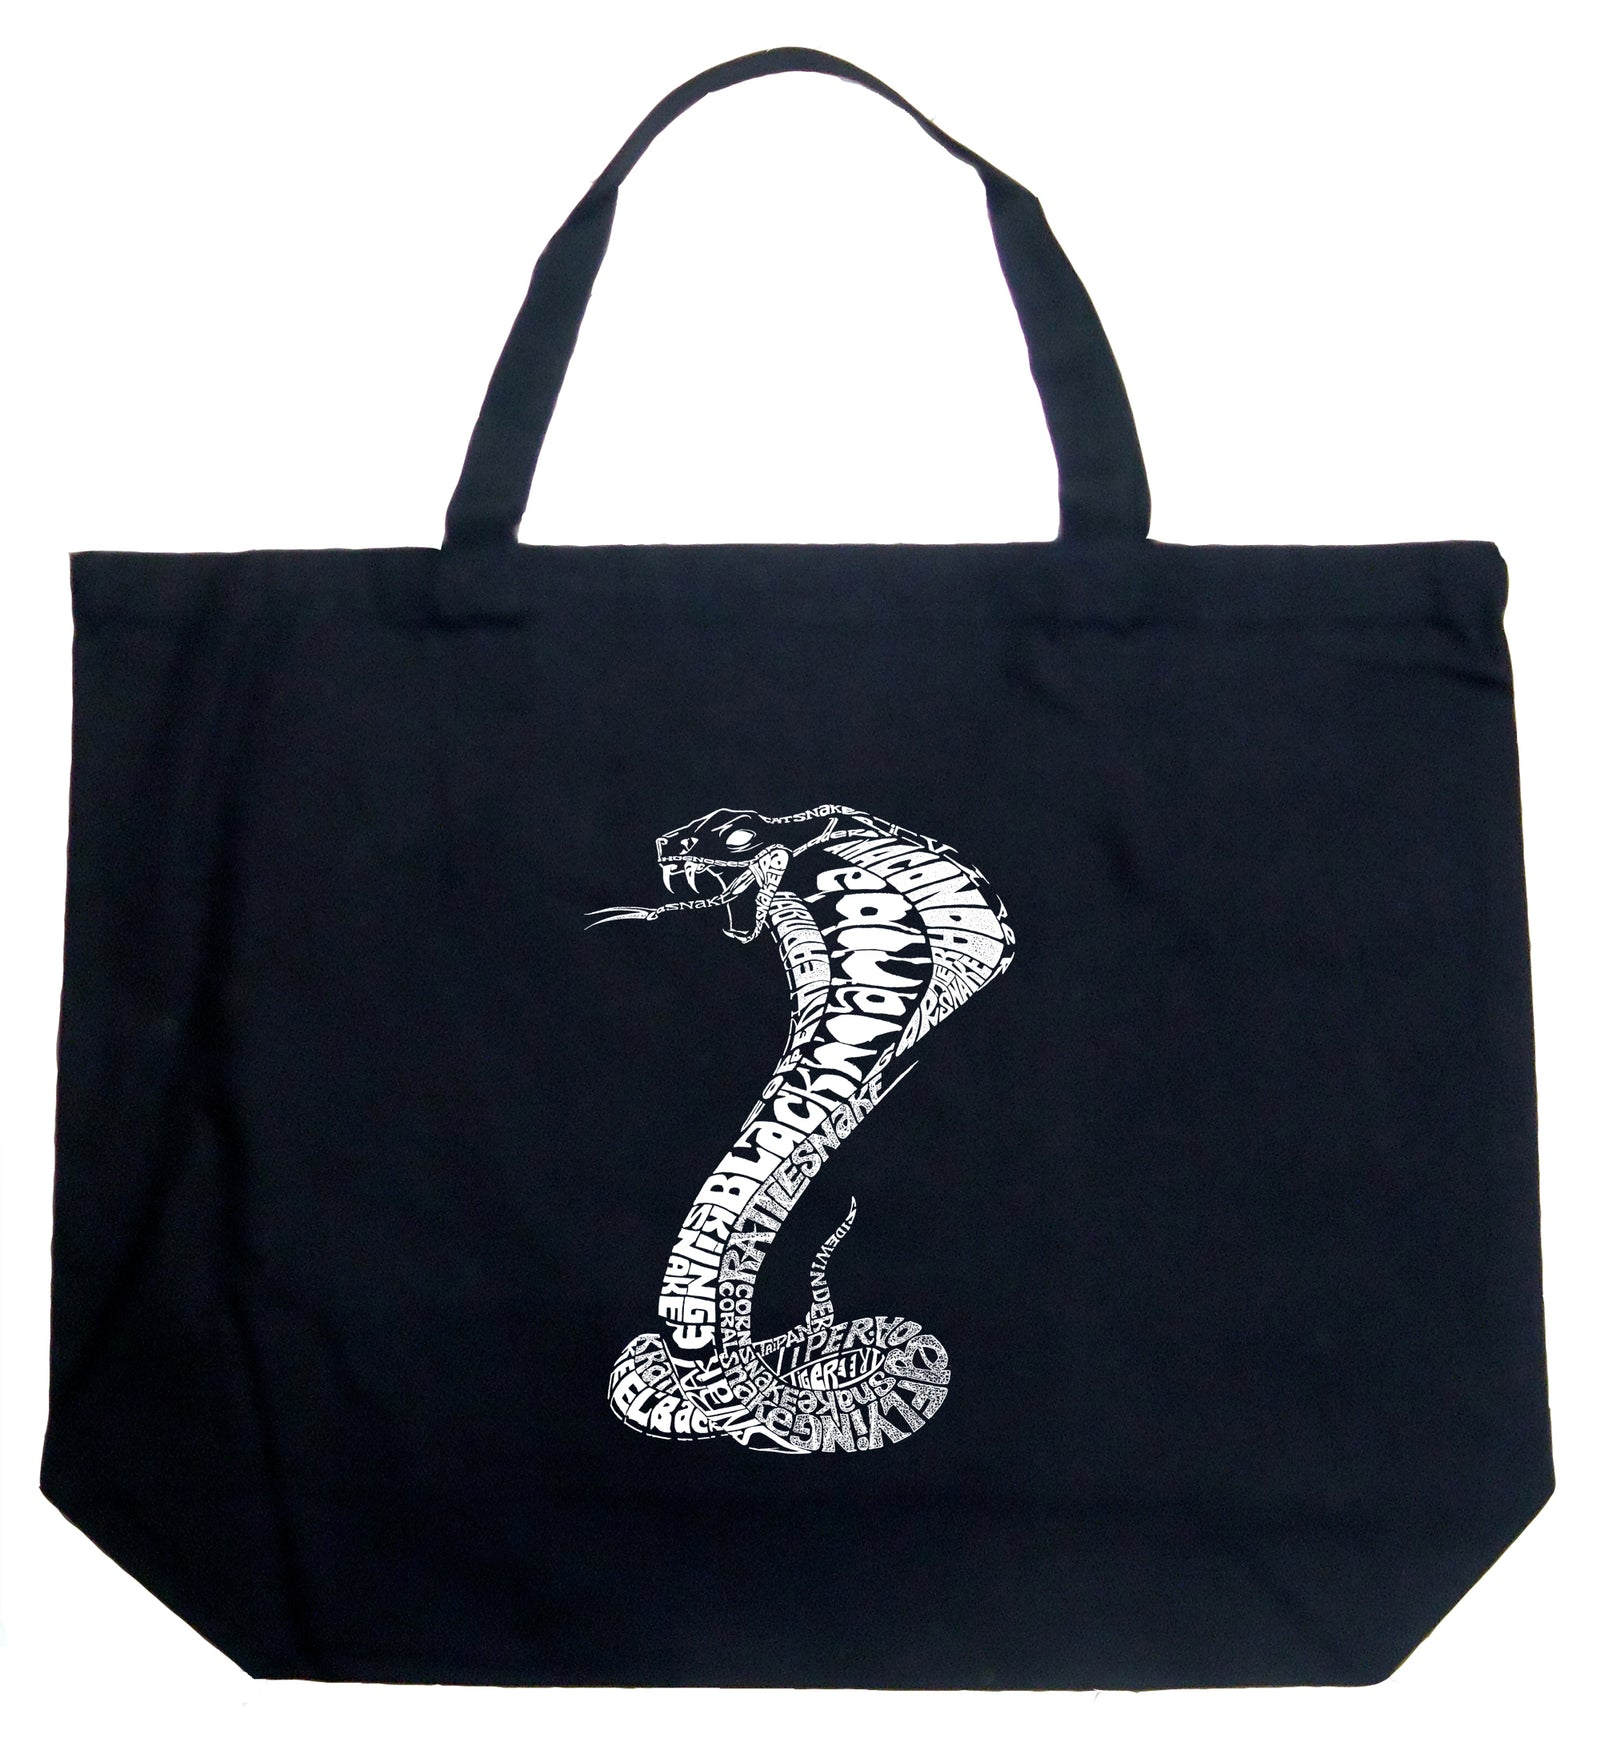 Large Word Art Tote Bag - Tyles of Snakes